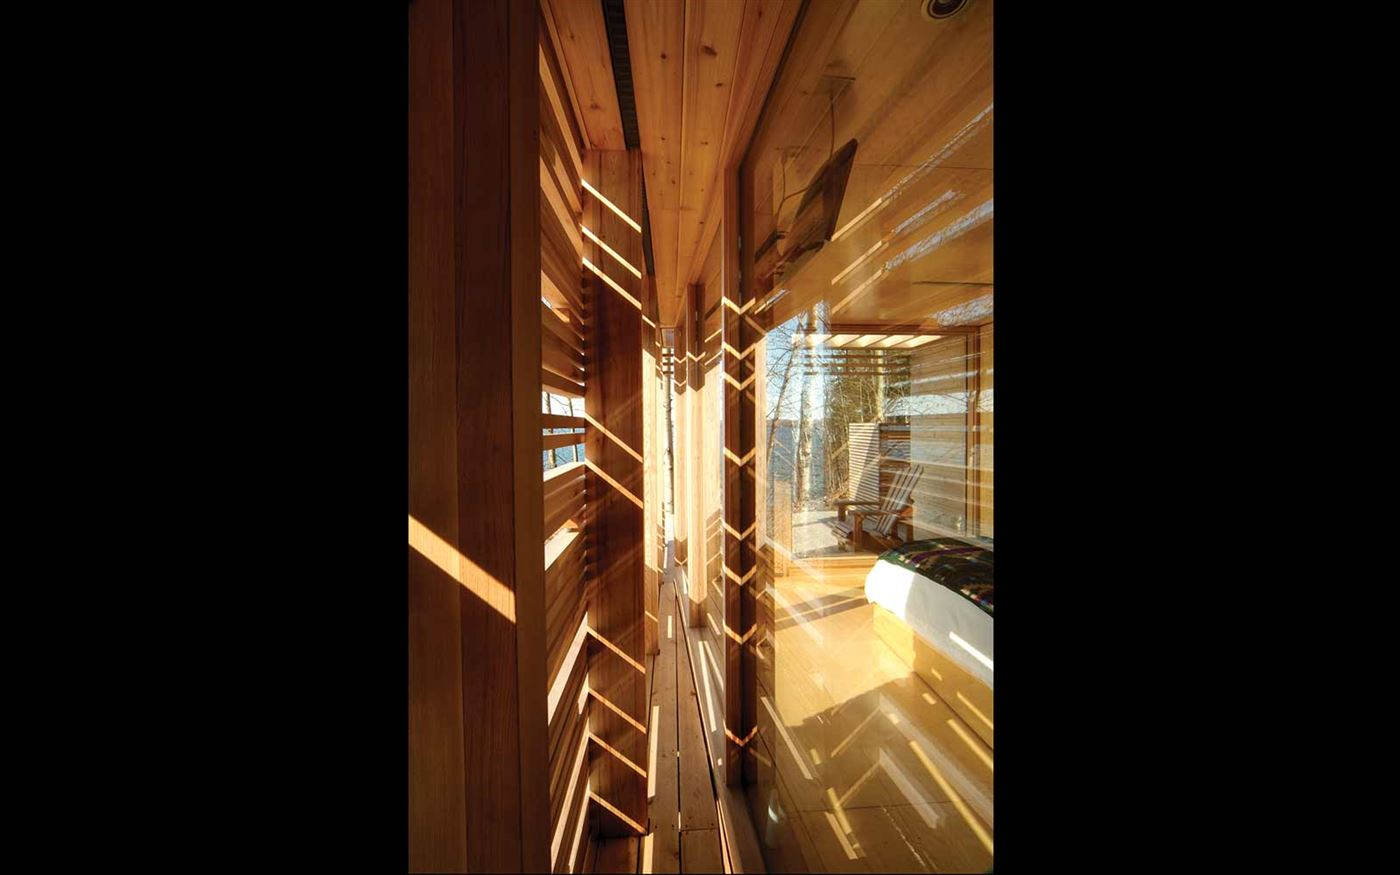 wood facade, cabin interior